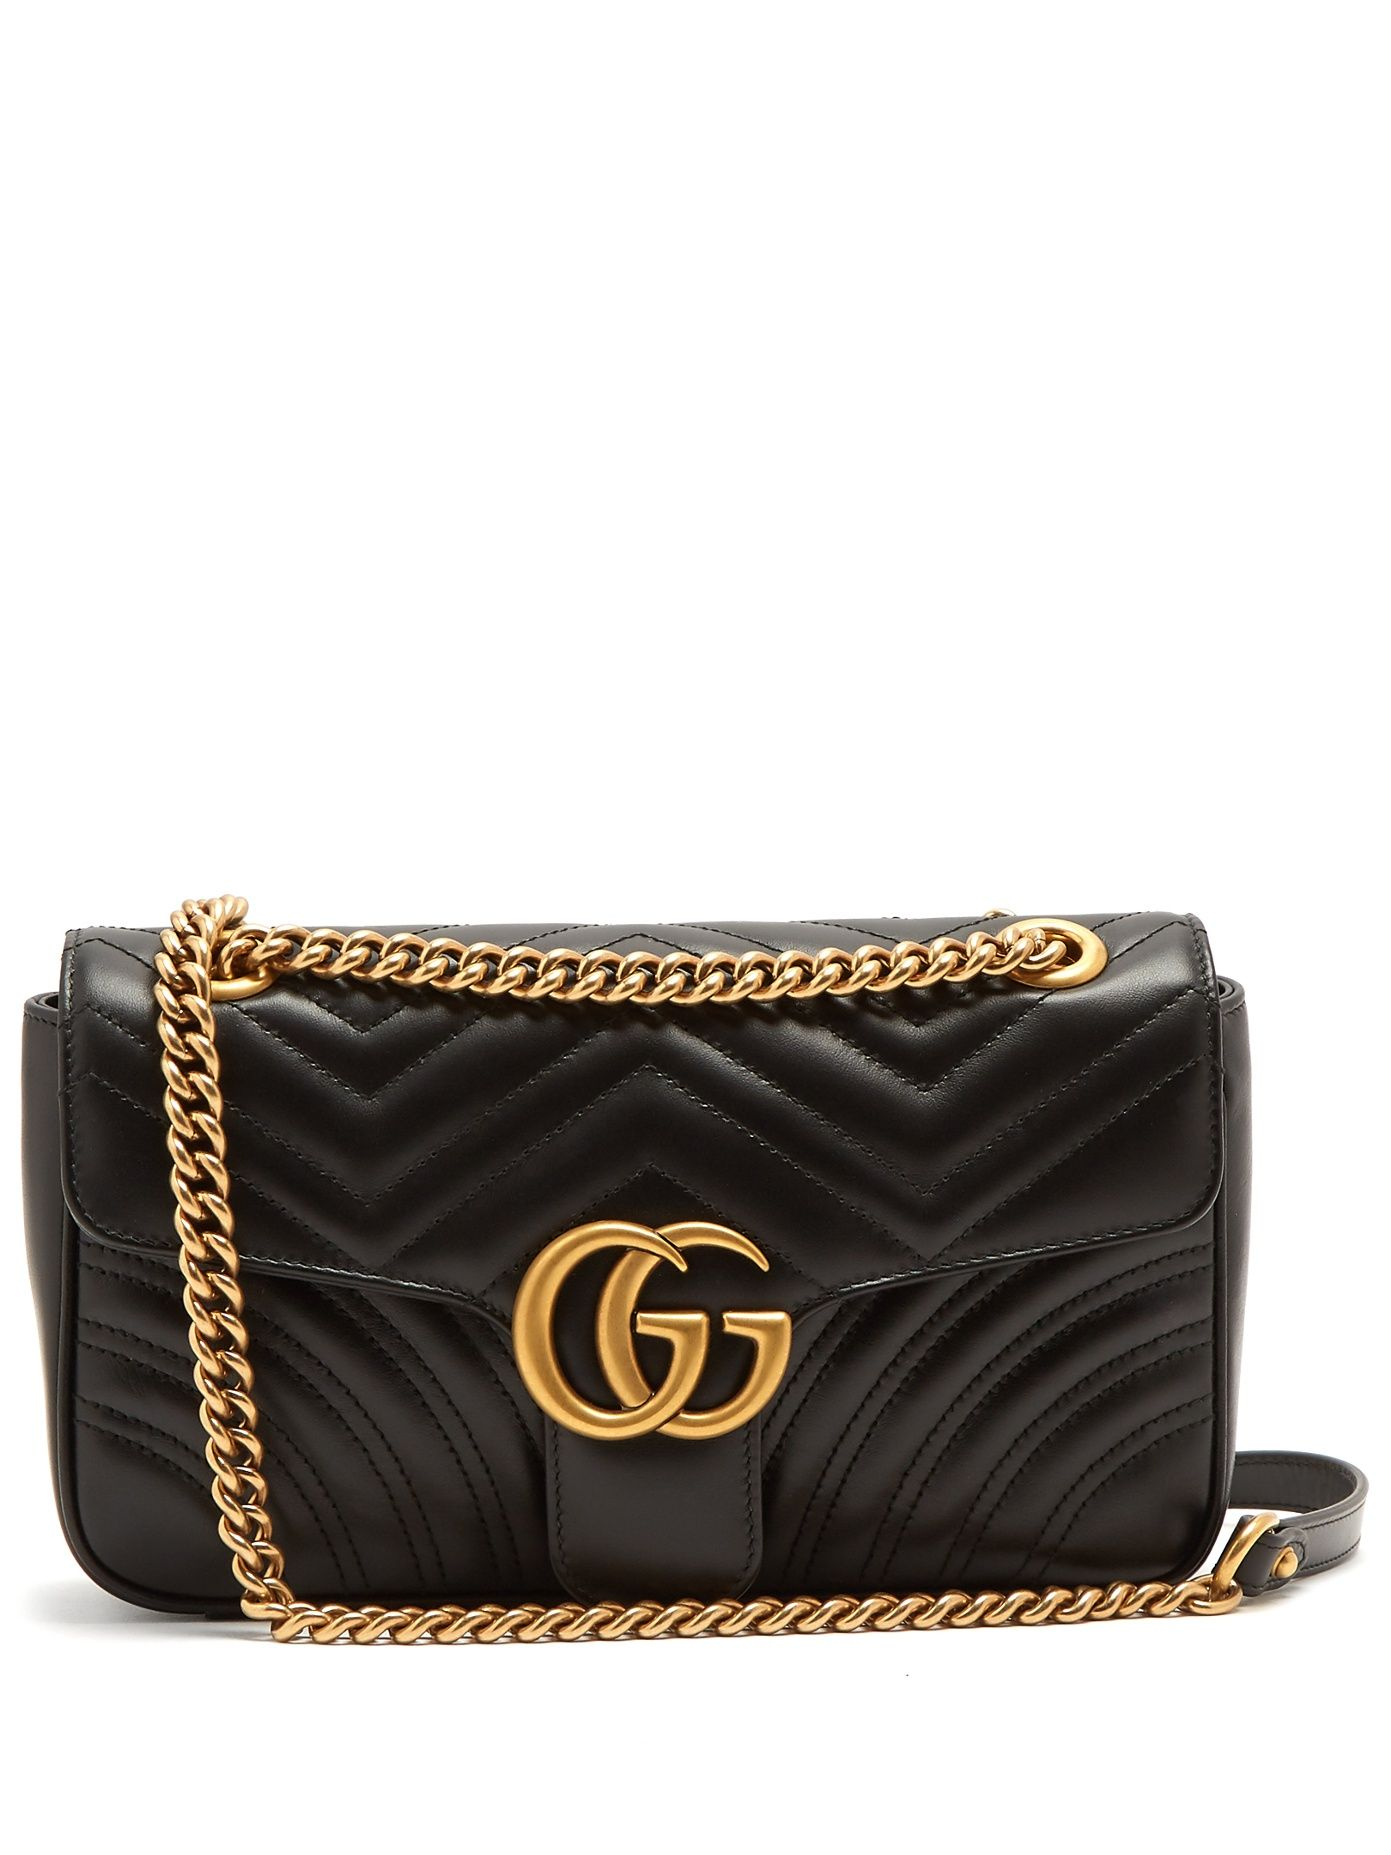 f5192526fc7 Click here to buy Gucci GG Marmont quilted-leather shoulder bag at  MATCHESFASHION.COM